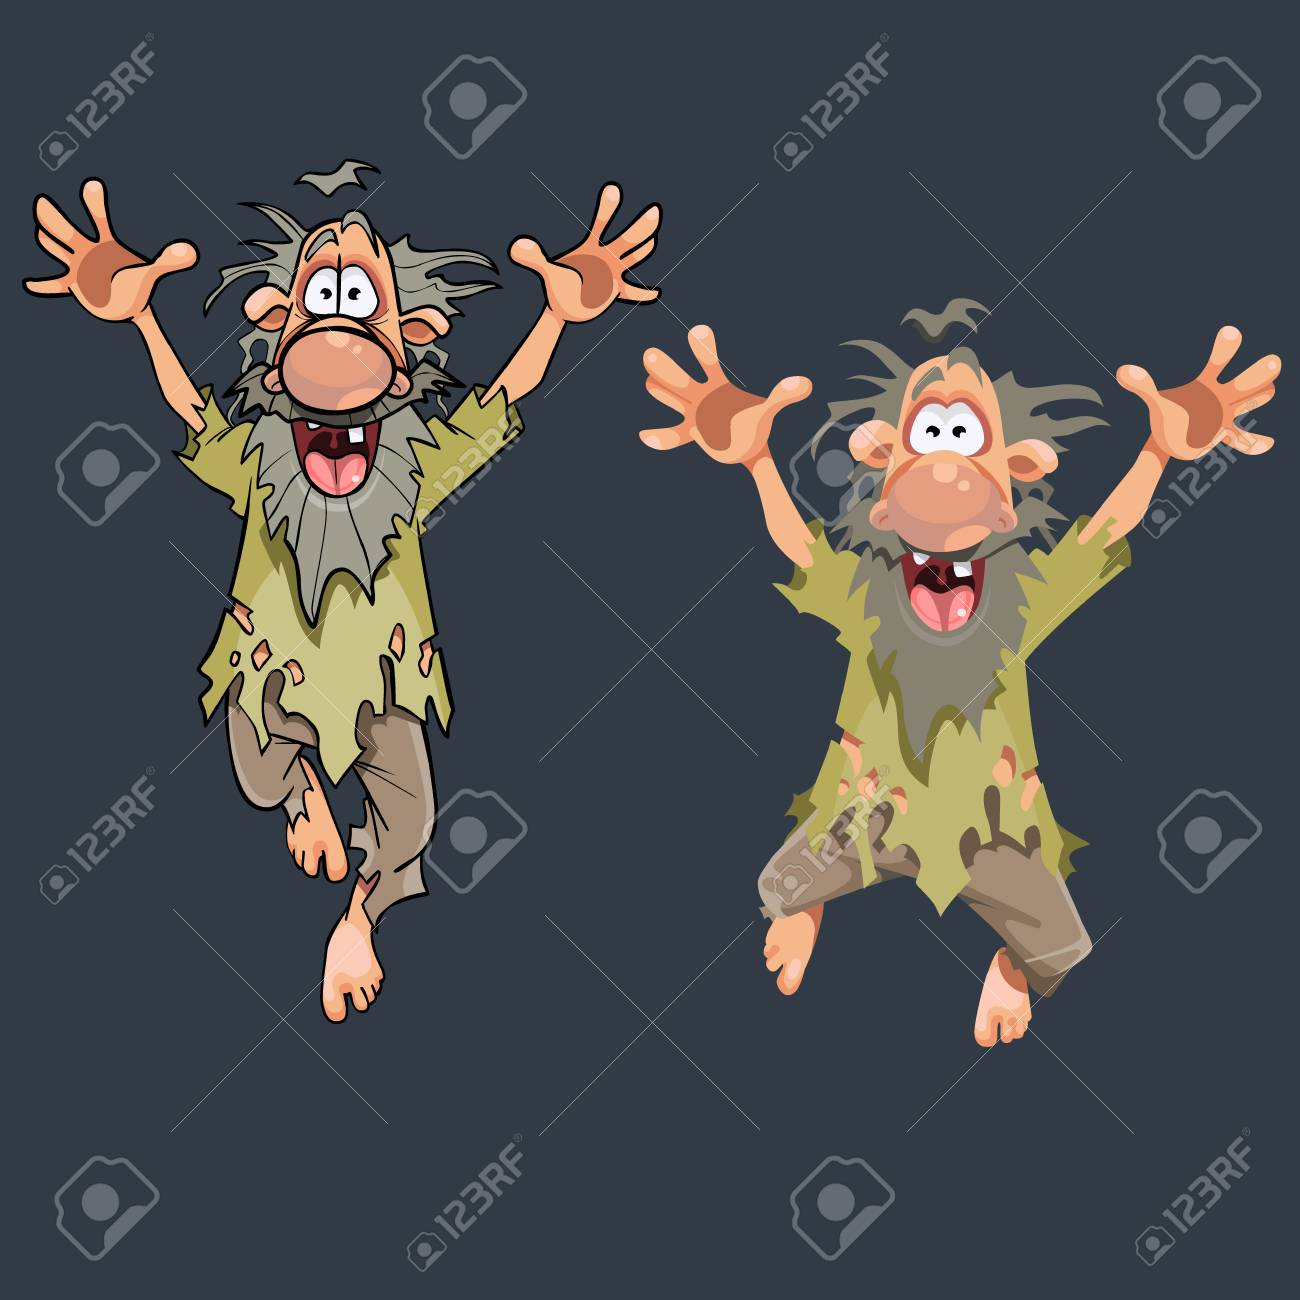 Cartoon funny man in ragged clothes jumping in different poses. - 92249570